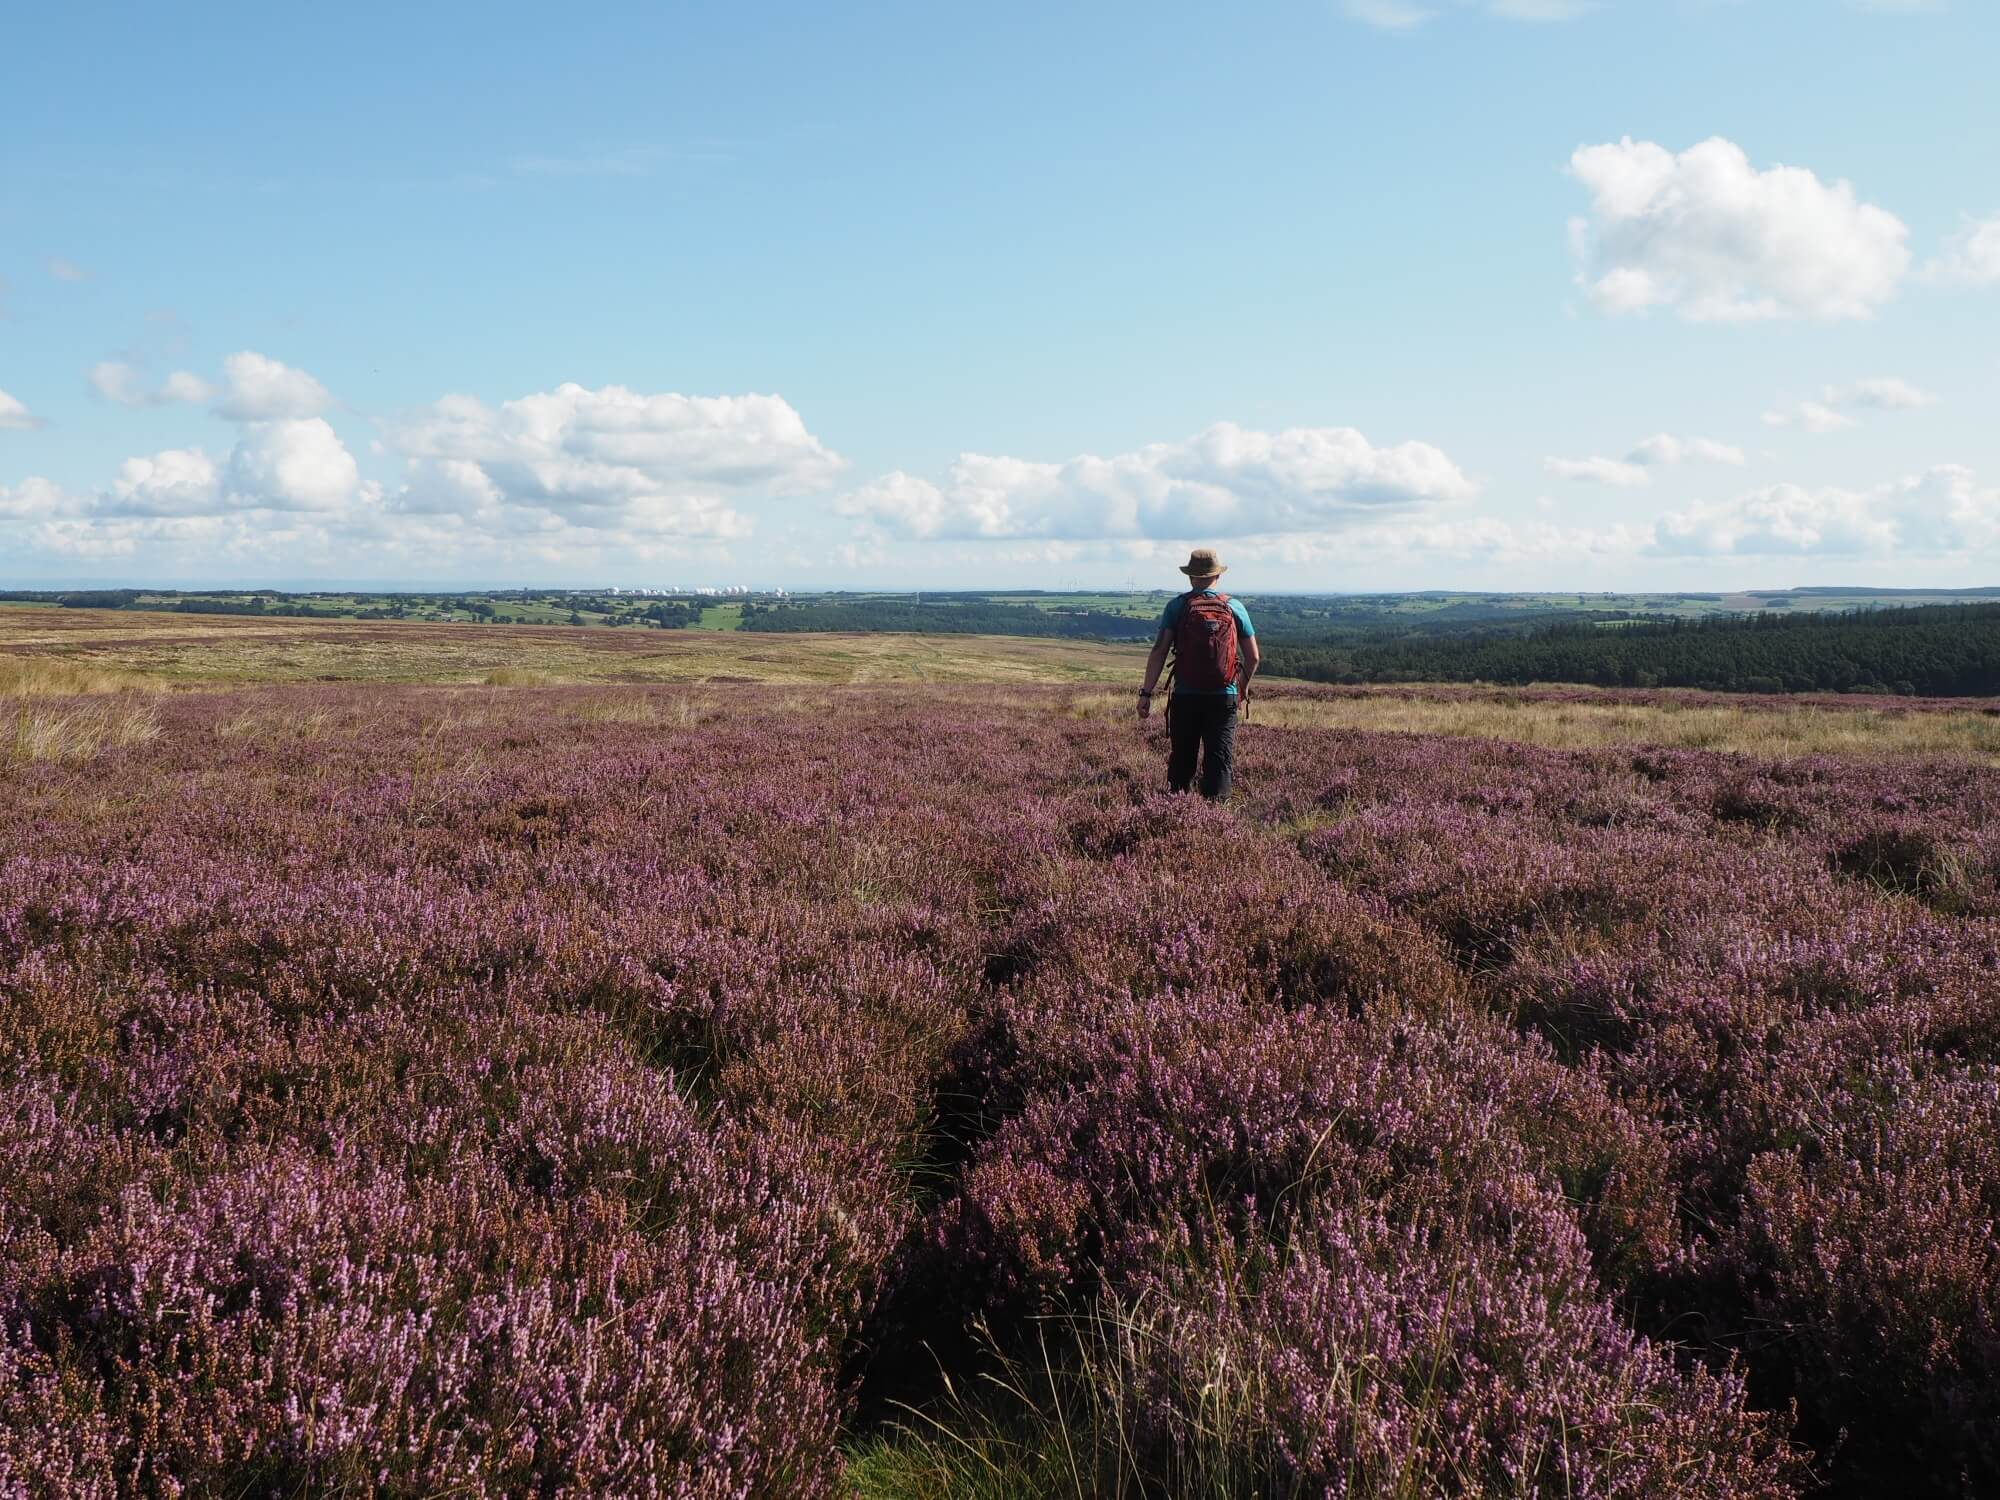 Heading through the heather